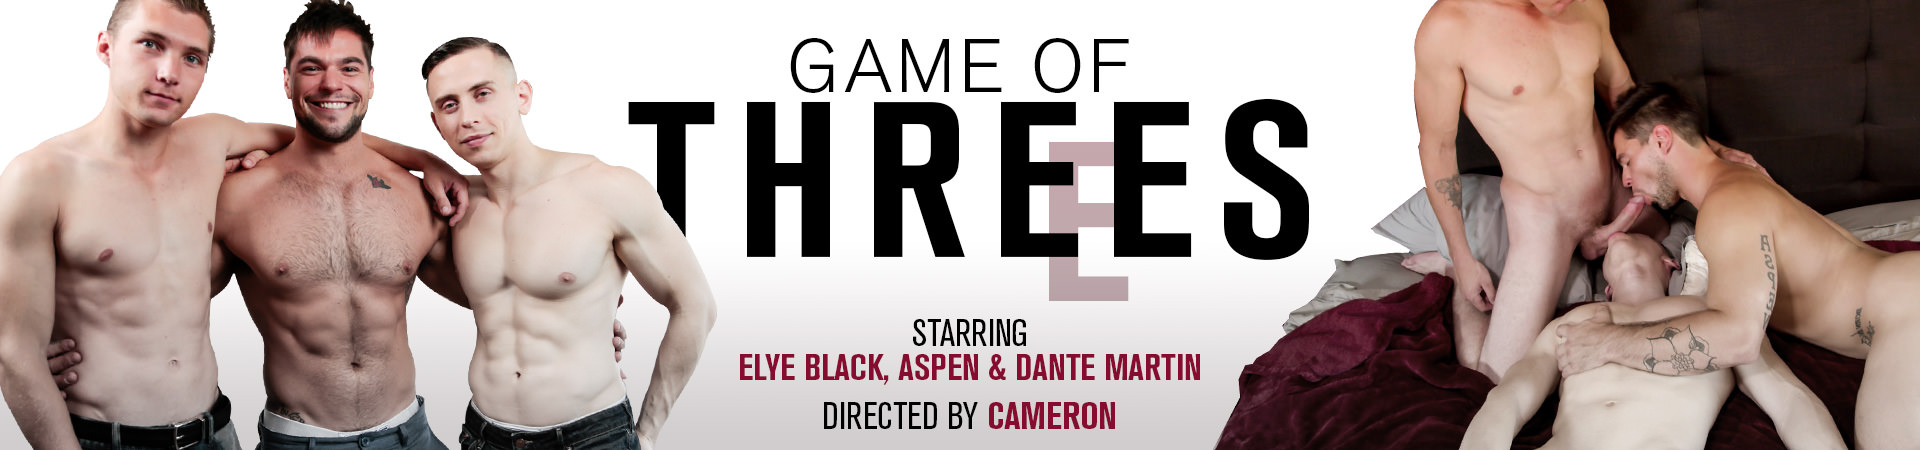 Game of Threes Featuring Aspen, Dante Martin, and Elye Black